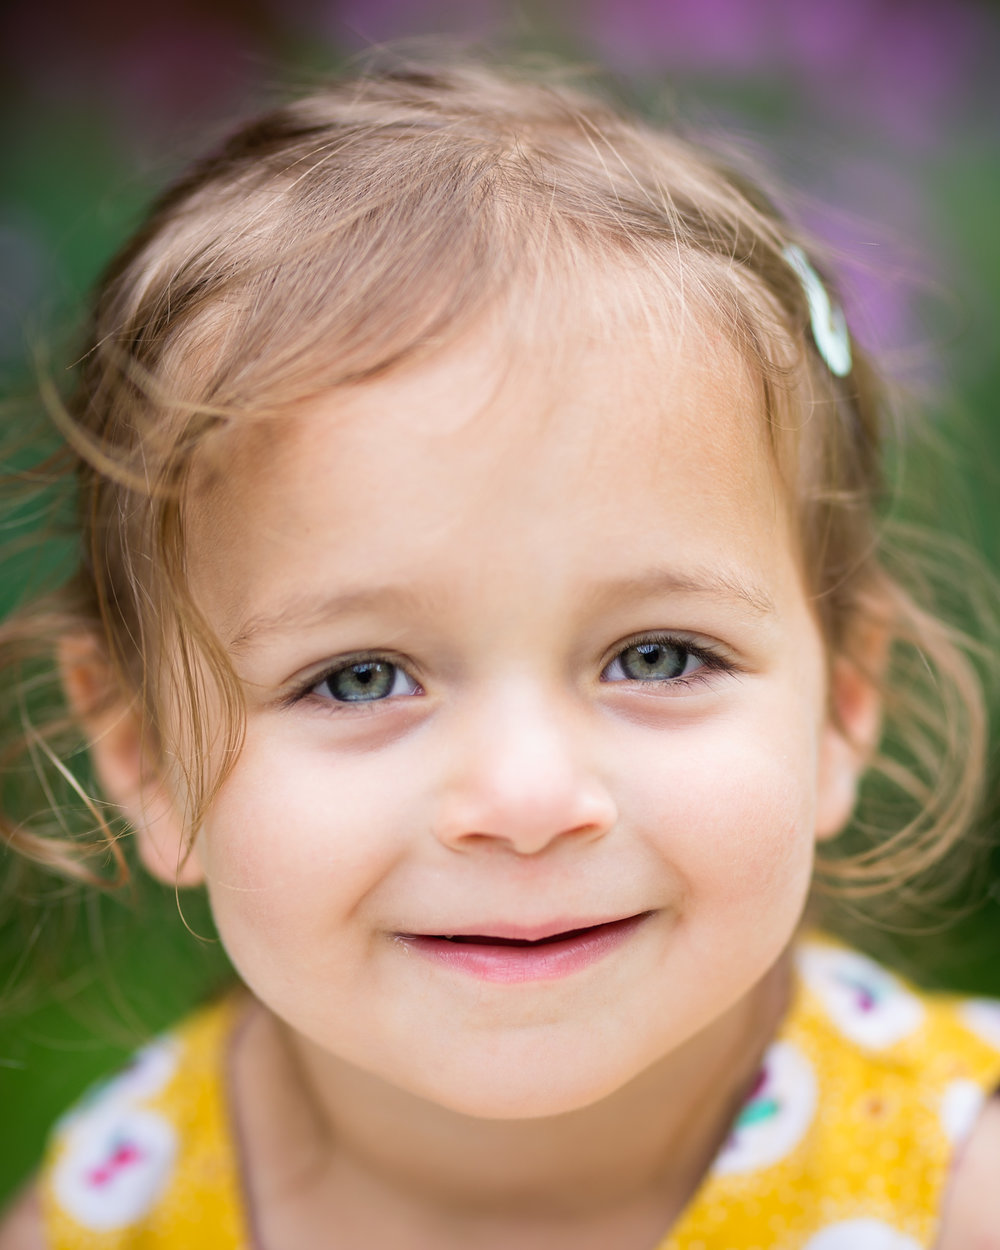 Toddler close up headshot | Children's Photography